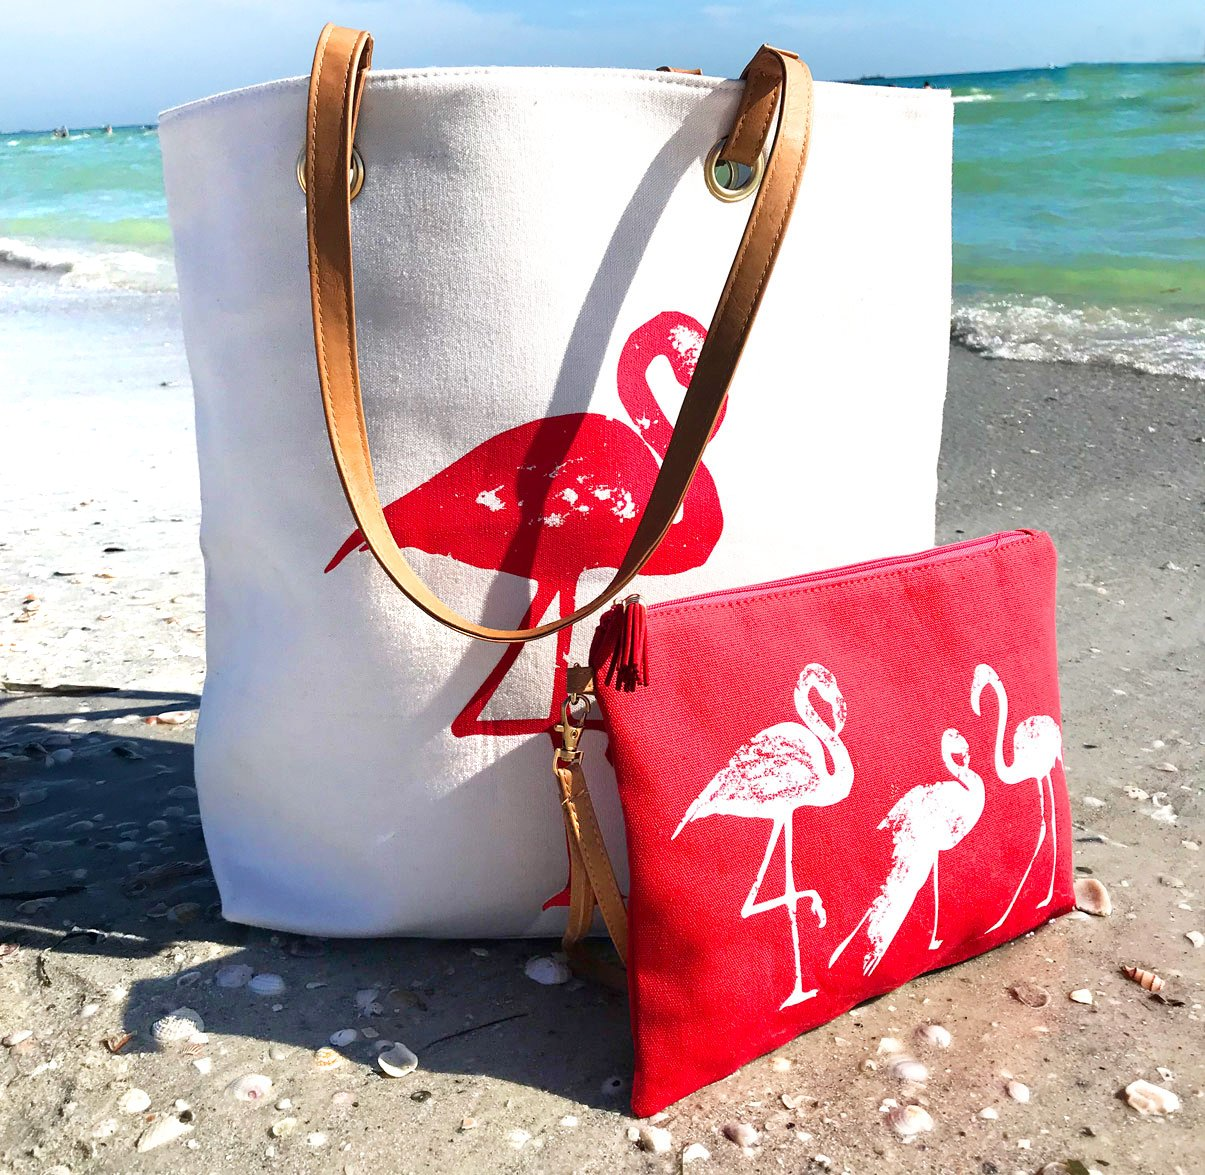 XL Large Cotton Canvas Flamingo Tote & Accessory Bag for Beach, Travel & Every Day by Kodi Lifestyle Collection (Image #3)